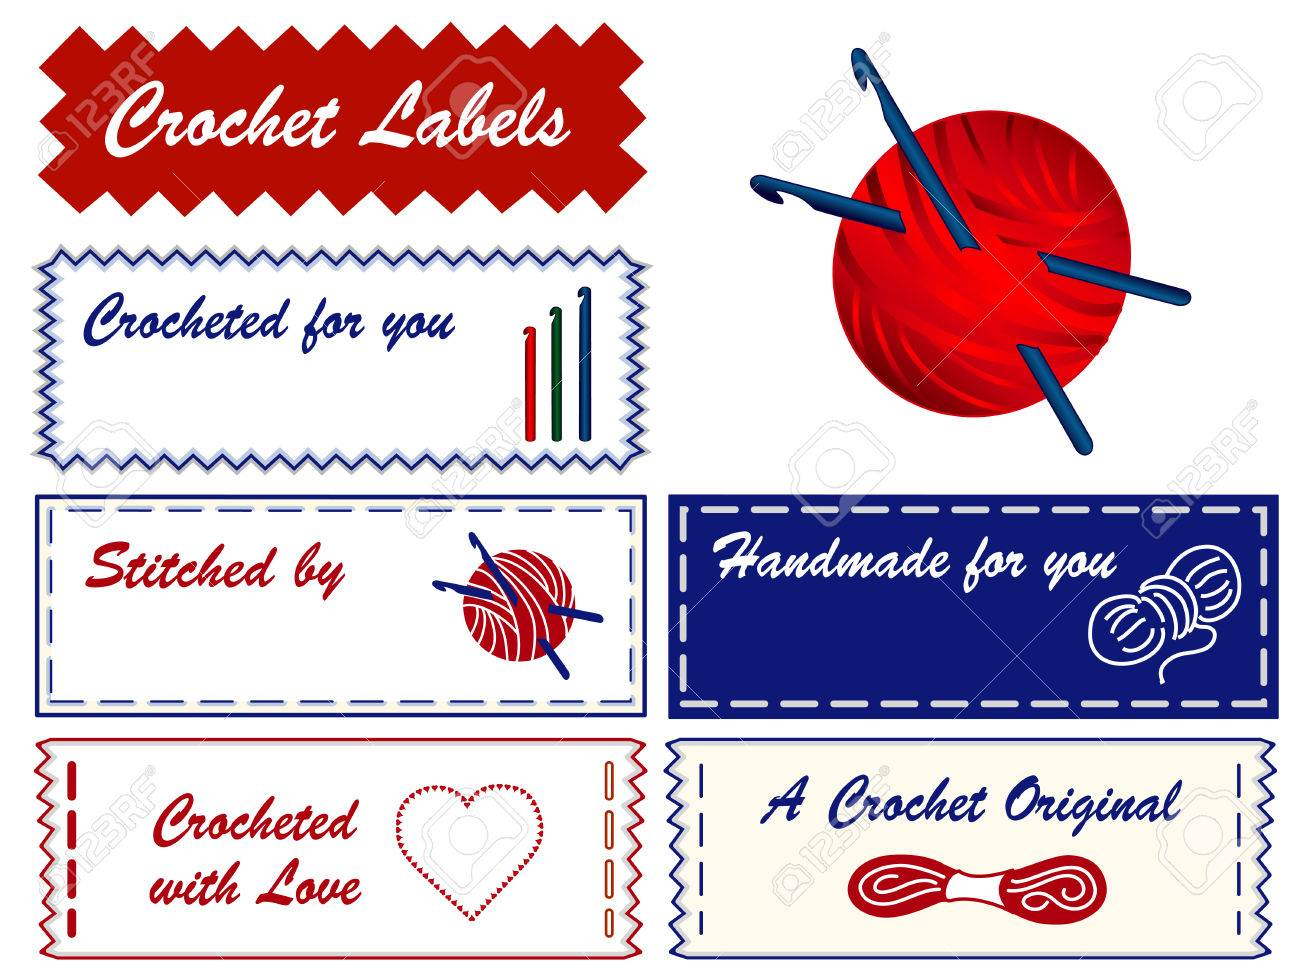 Crochet Sewing Labels With Copy Space To Customize For Crocheting